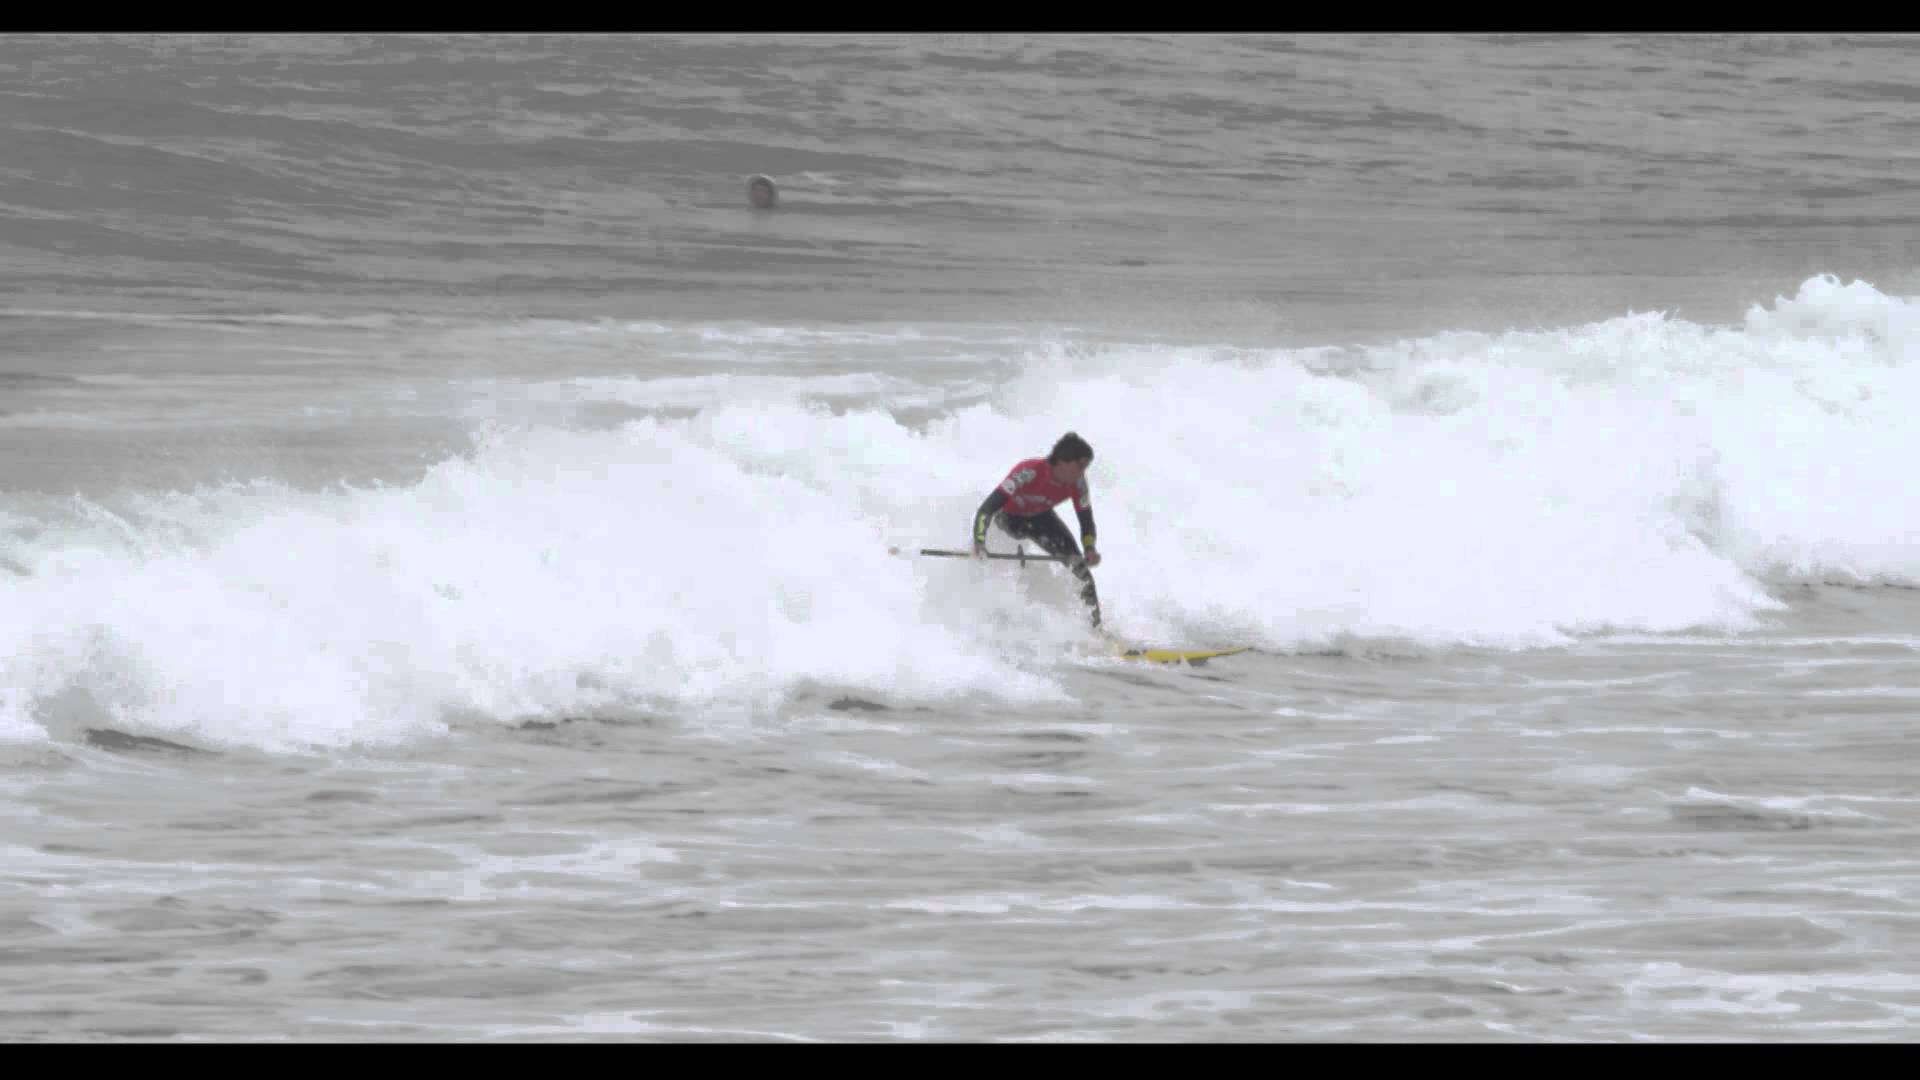 Finals of the La Torche Pro 2014